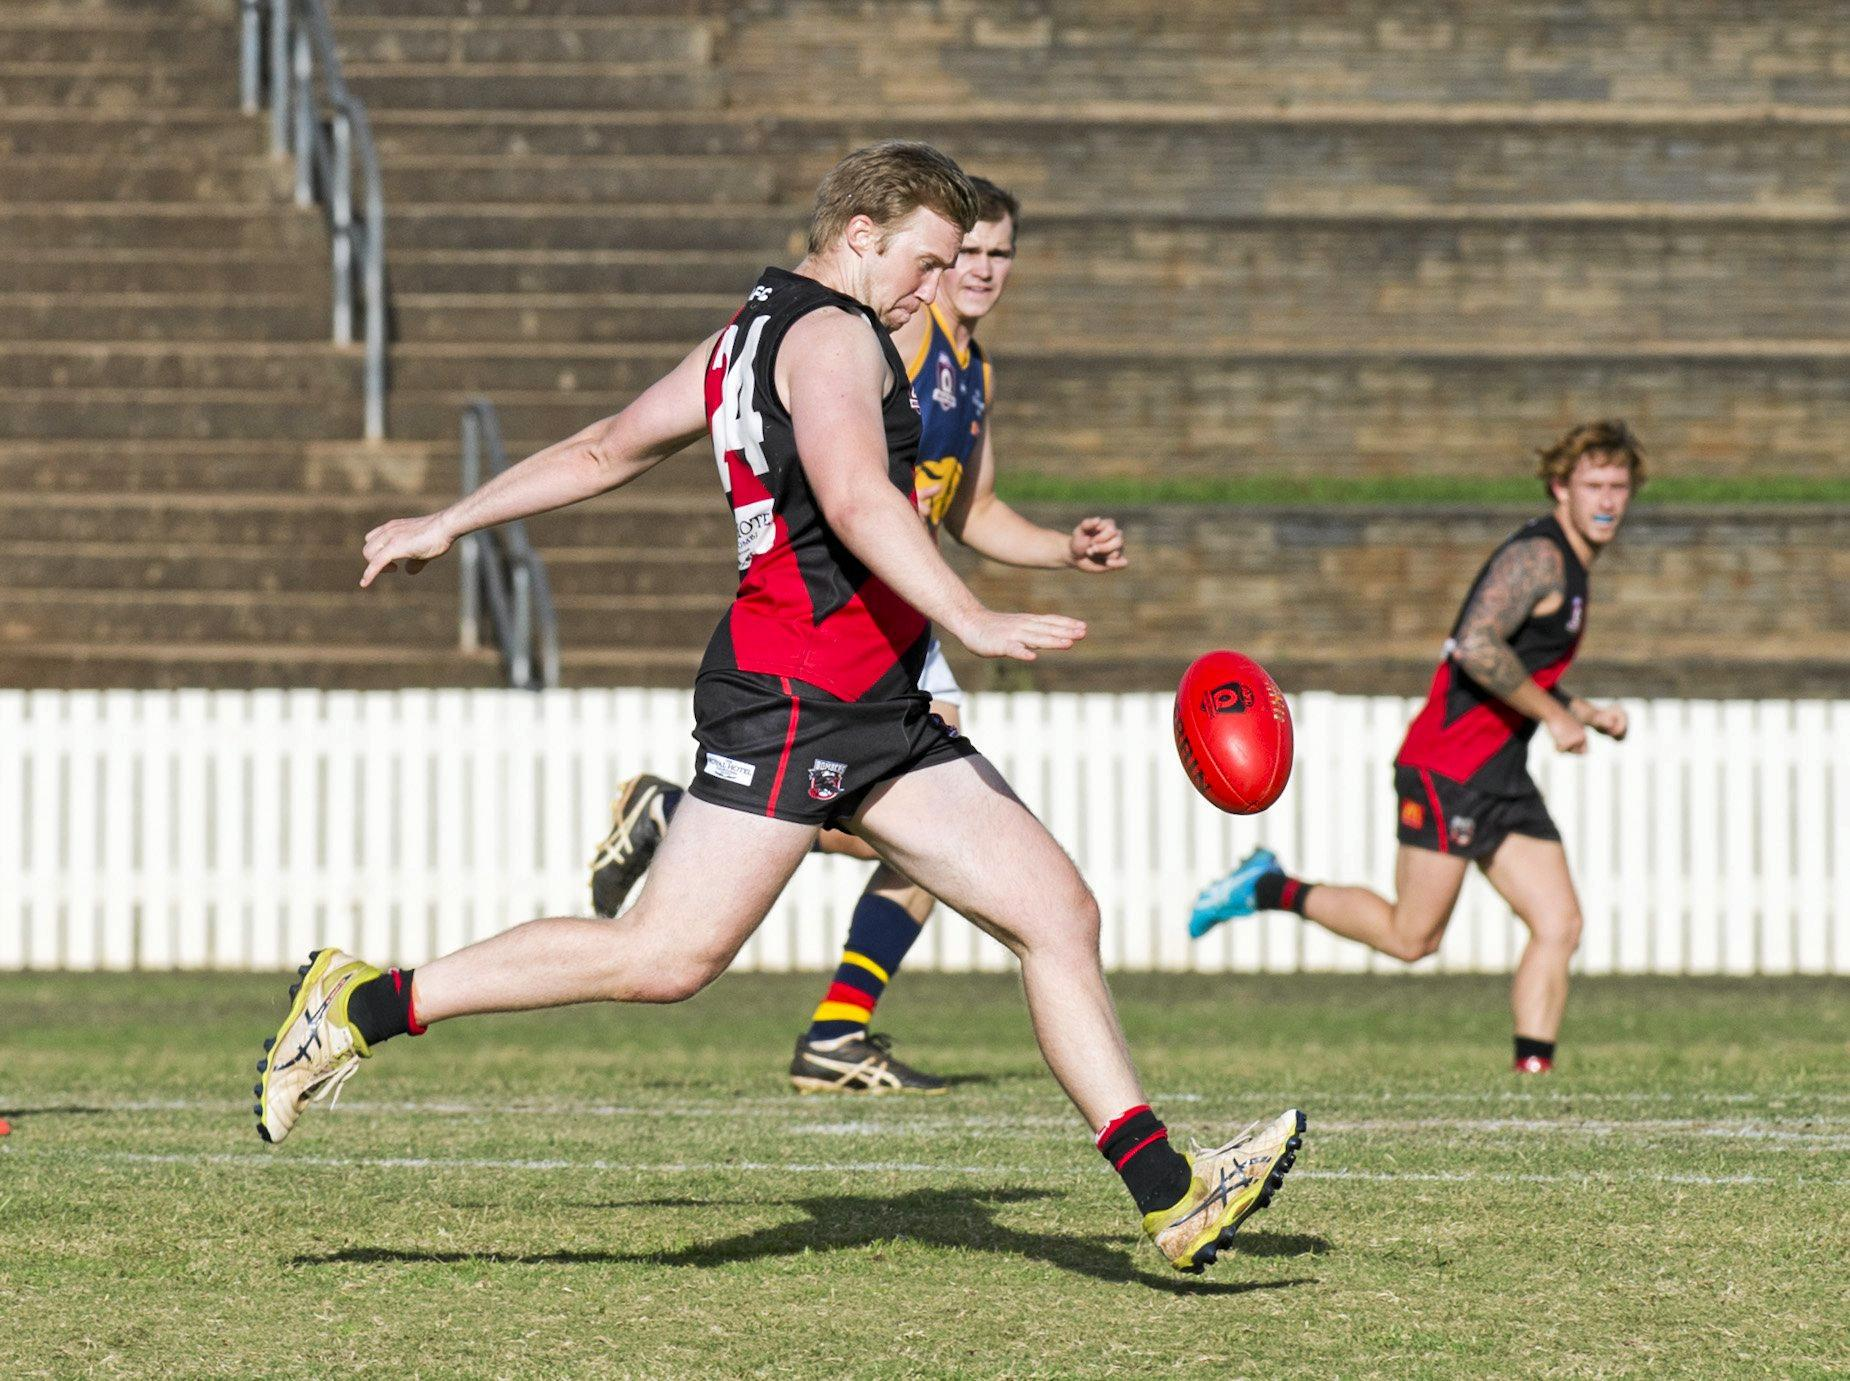 SWEET CONTACT: Alexander Kratzmann prepares to launch the ball downfield for South Toowoomba.